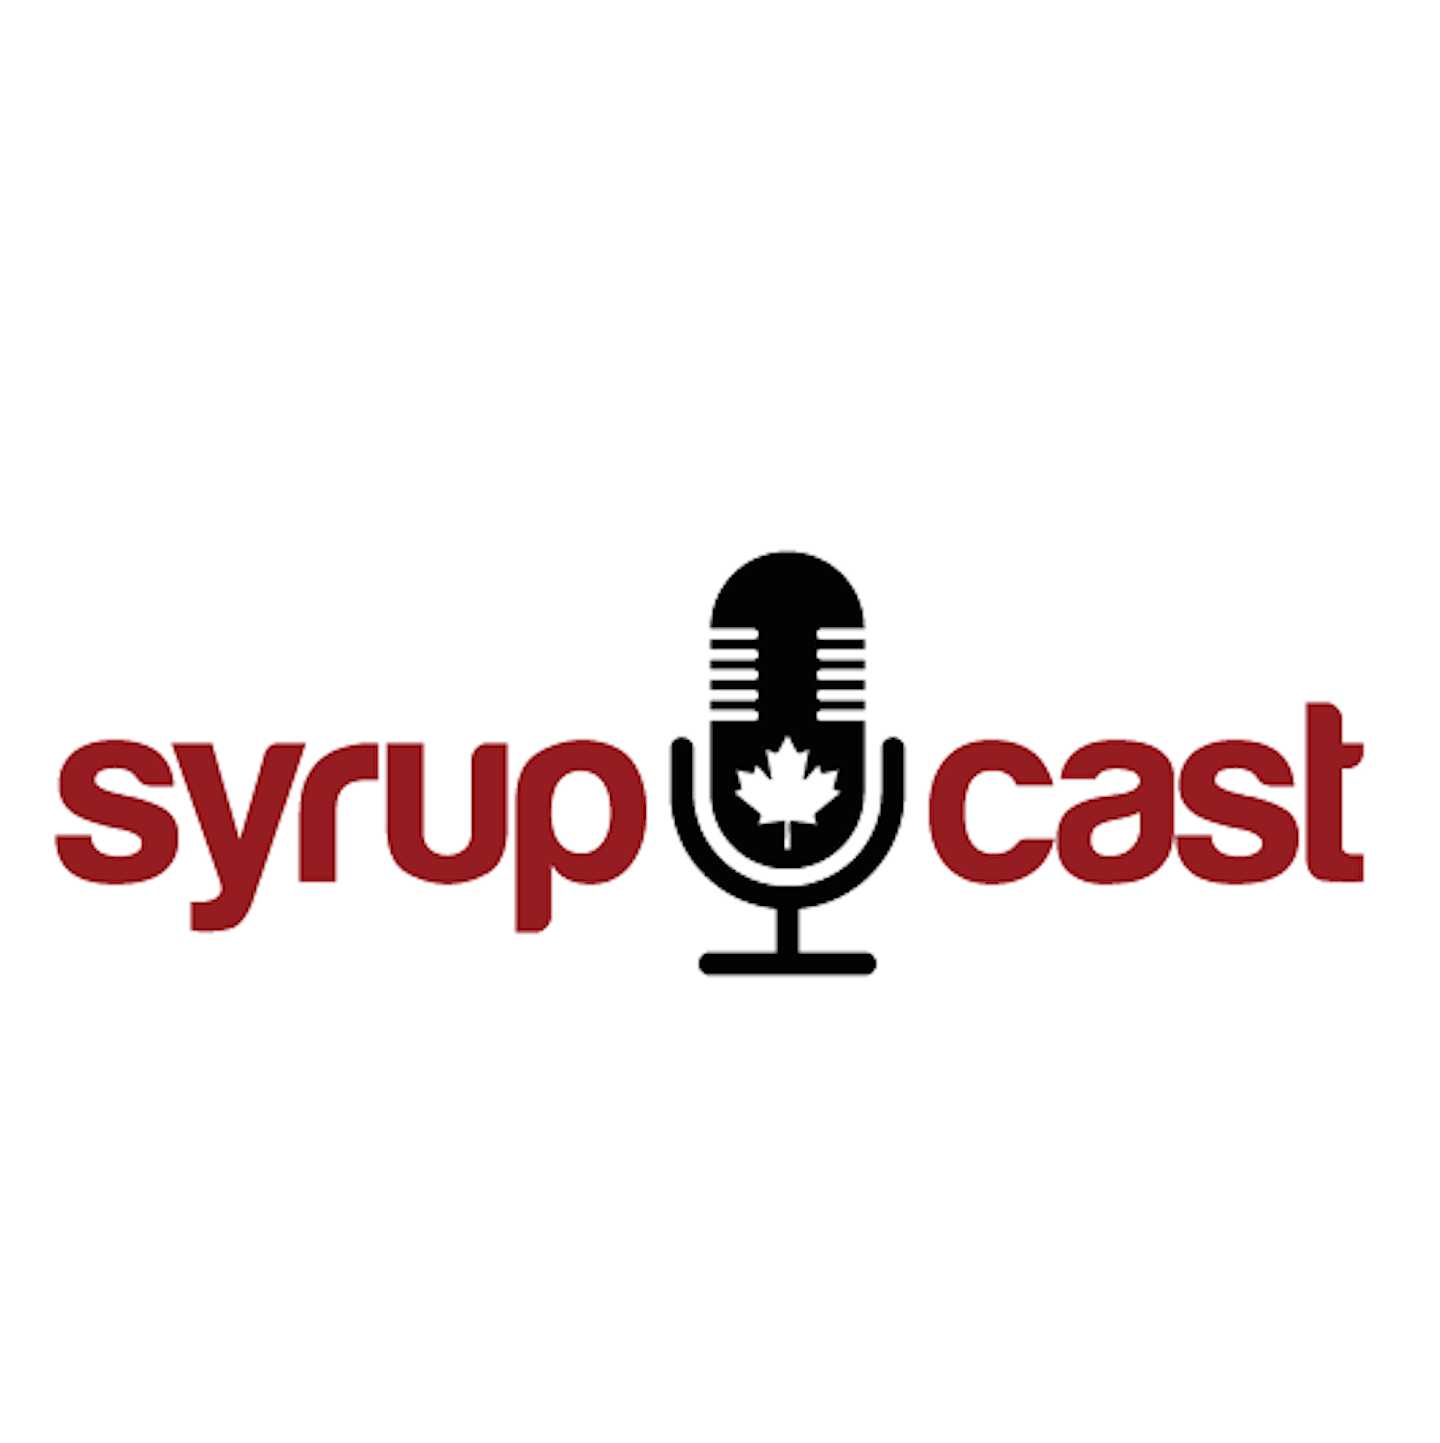 SyrupCast 80: DTEK50's enterprise focus and tech giant earnings